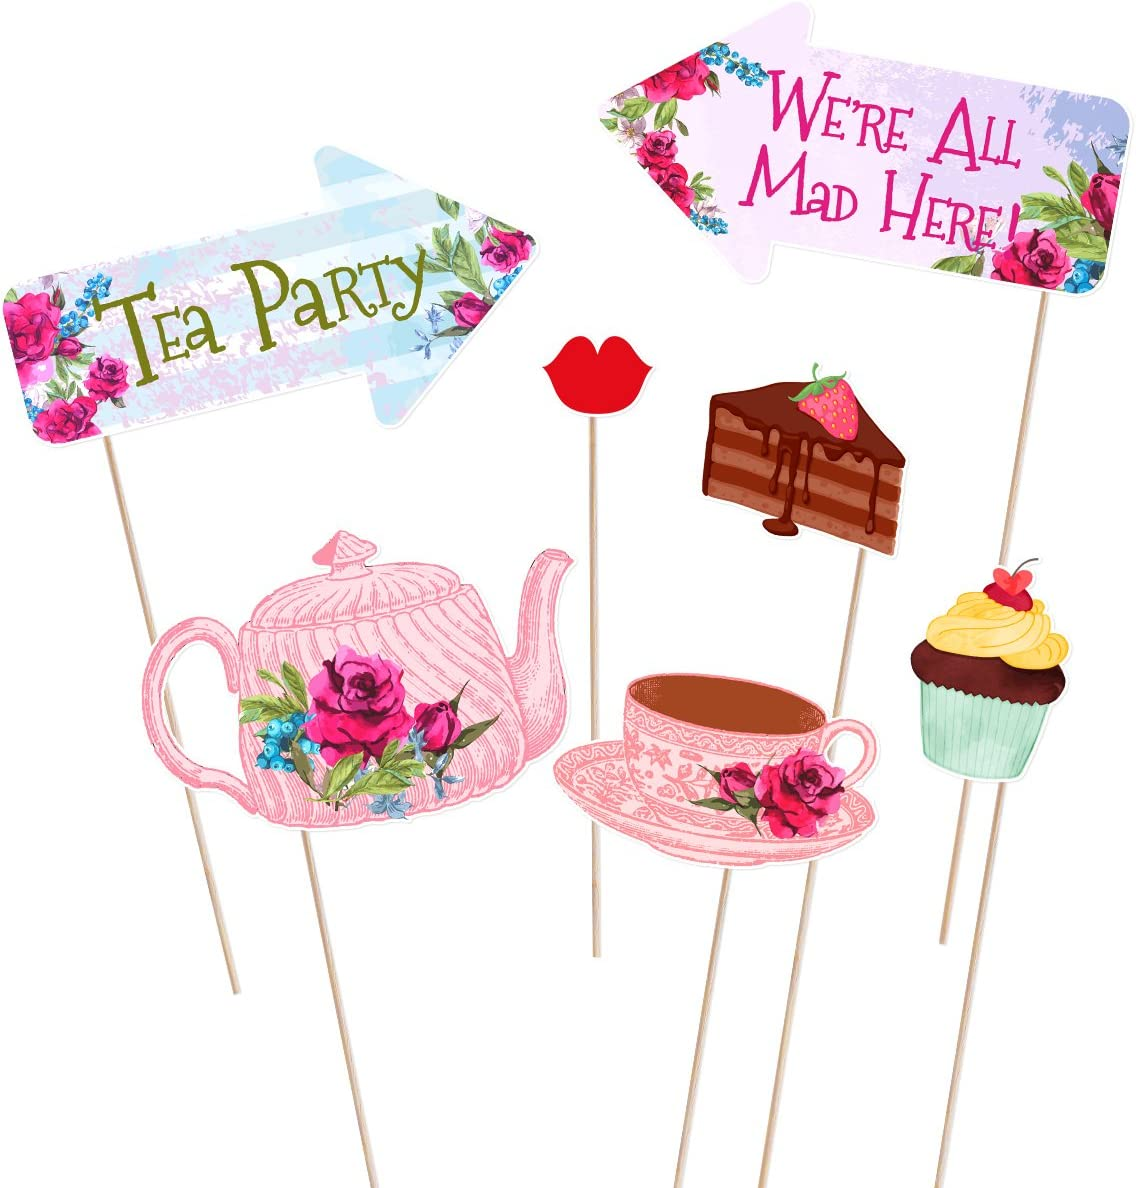 LUOEM Tea Party Photo Booth Props Tea Party Stick Props Funny Tea Party Supplies WeddingBacheloretteEngagementBirthdayBridal ShowerChristmas Party Decorations 30 Pack